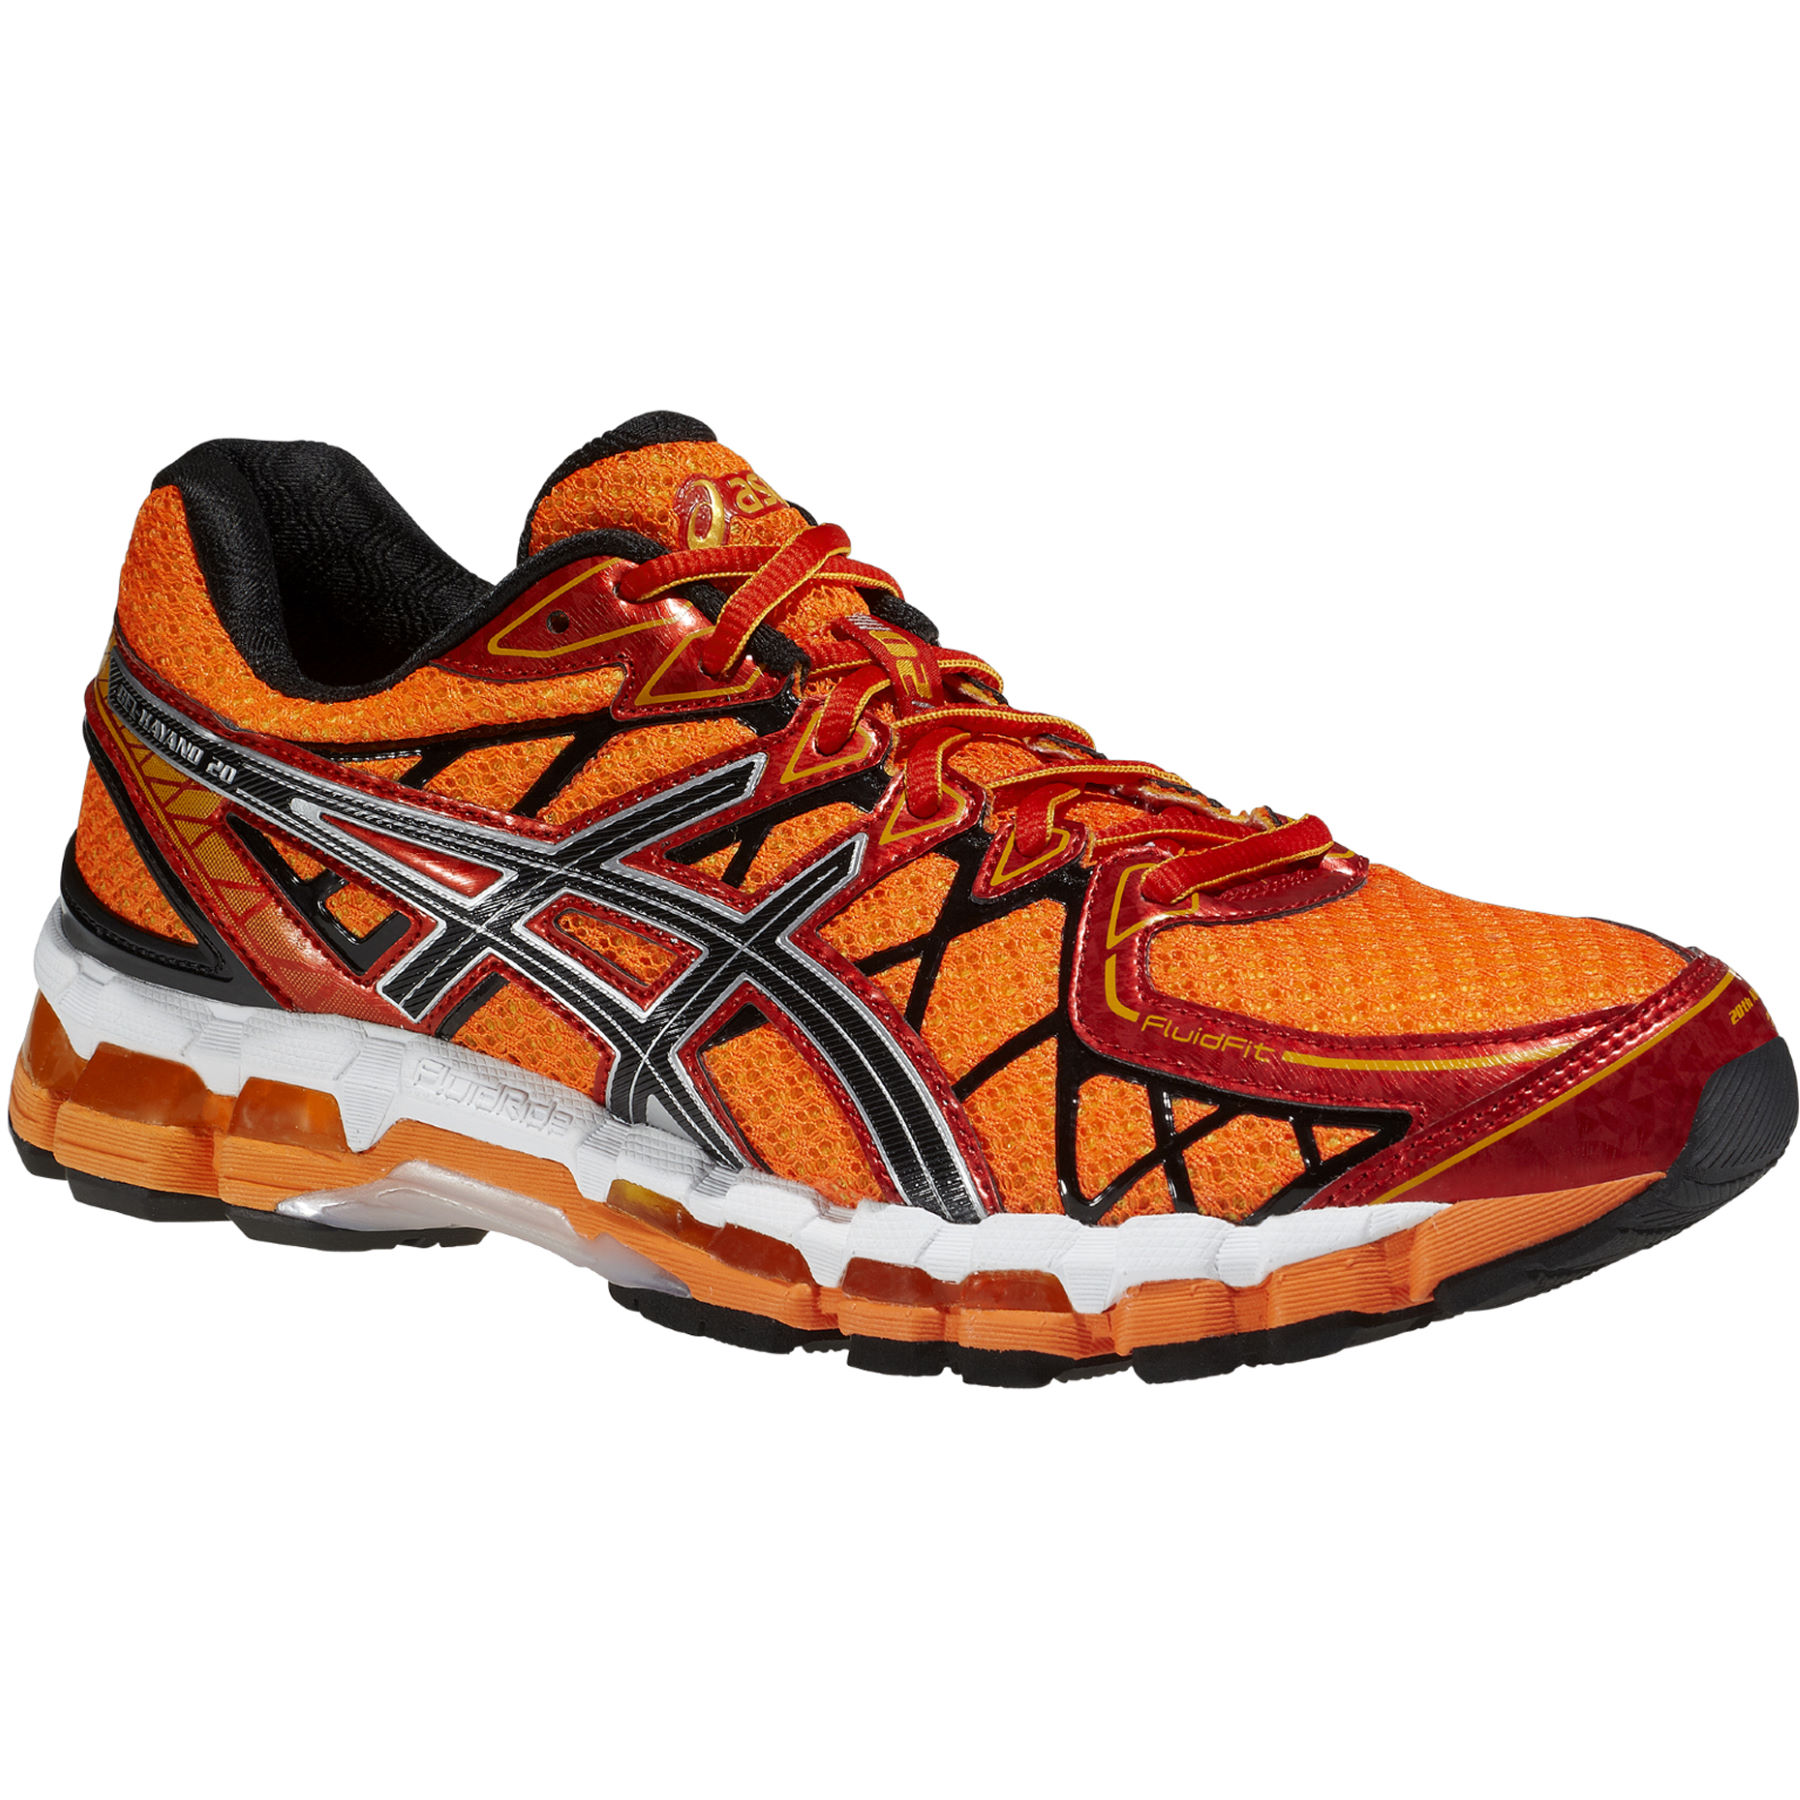 Wiggle | Asics Gel-Kayano 20 Shoes - AW14 | Stability ...